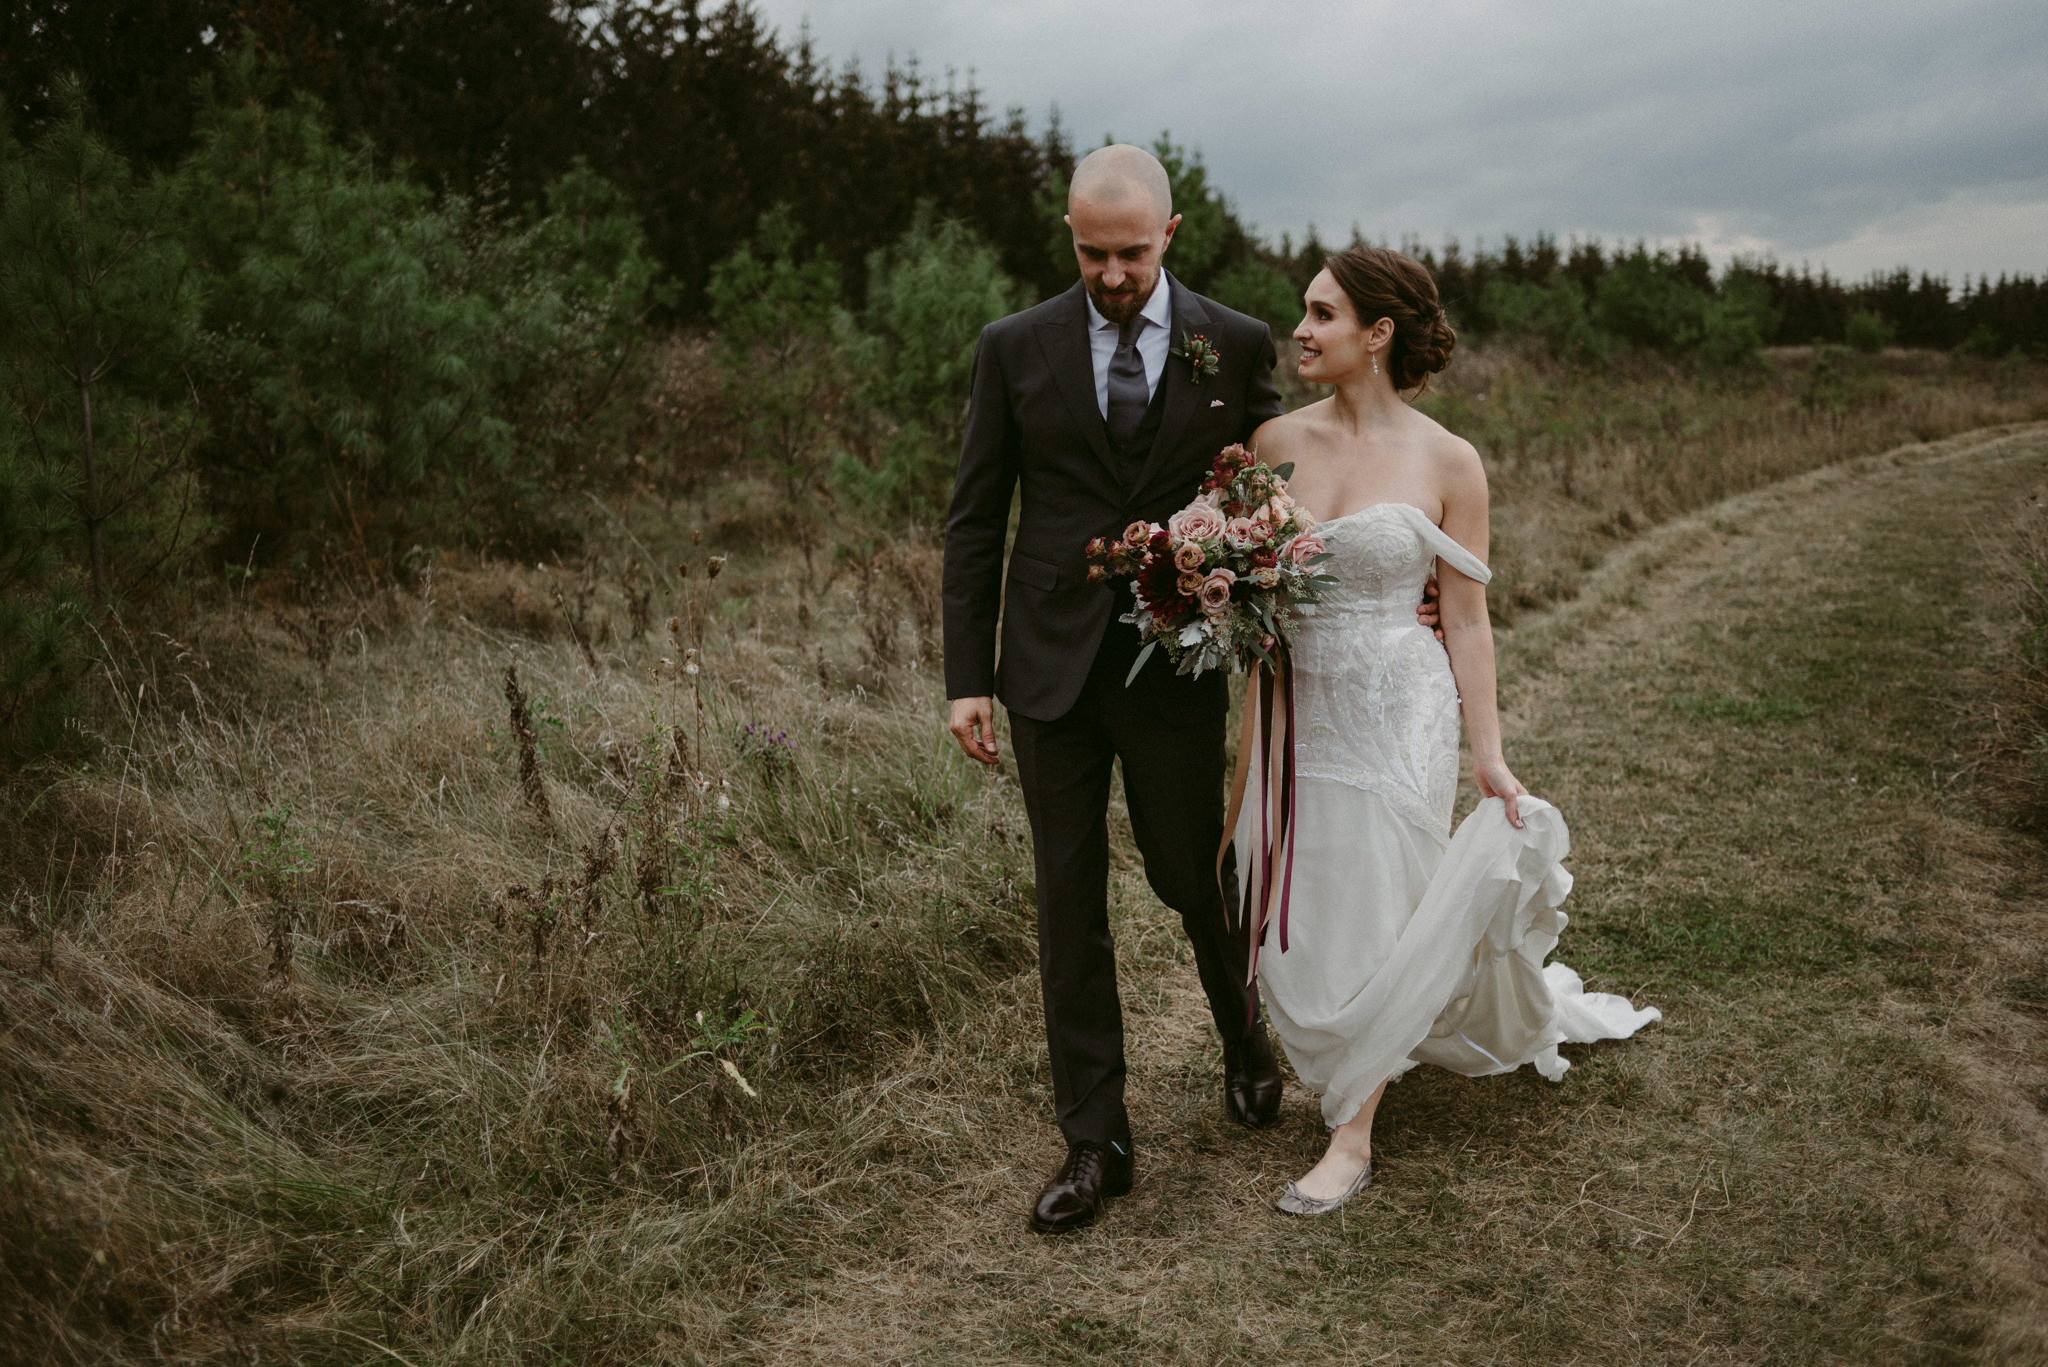 Bride and groom walking together in field